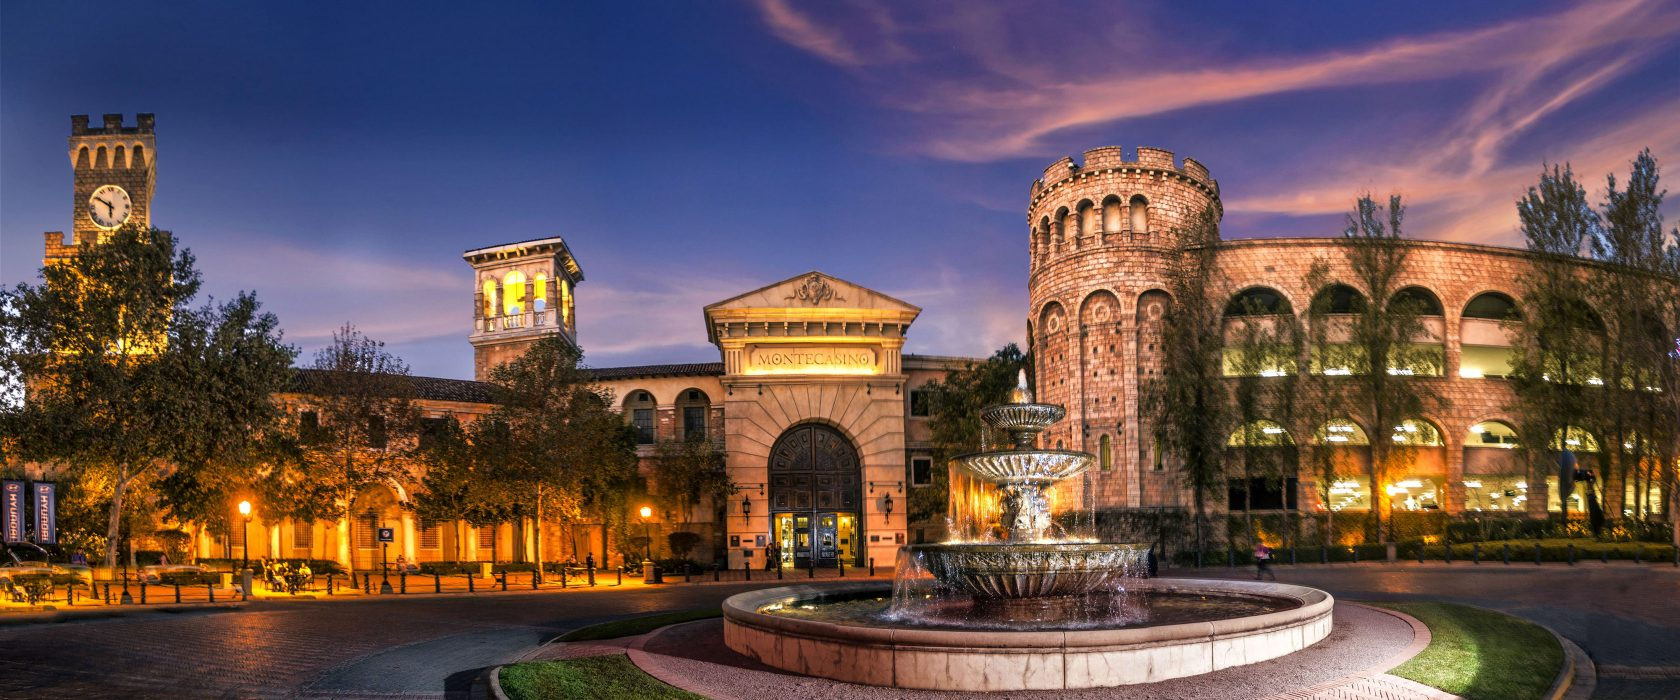 Exterior View Of Montecasino At Night